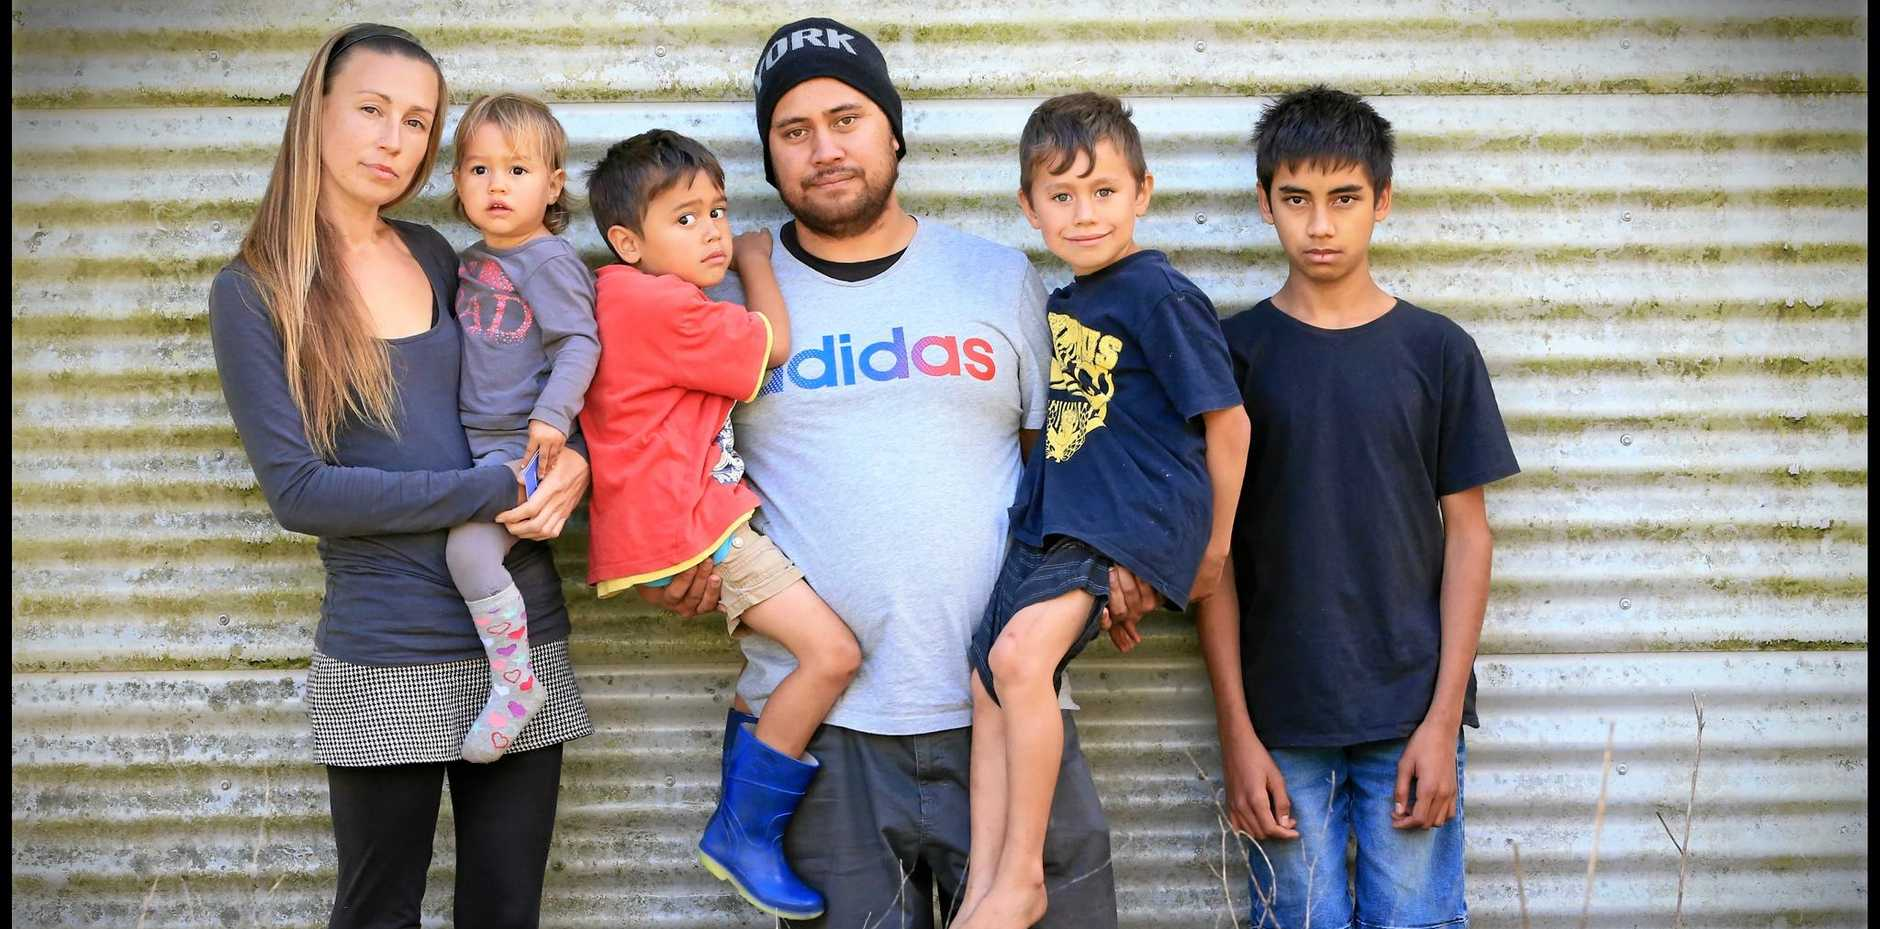 Victims of the Bhula bhula Intentional Community scheme in Tweed Valley are Sarah and Tamati Kirkwood, with their children Rangimarie, 2, Wiremu, 5, Zachary, 7 and Manaaki, 15.